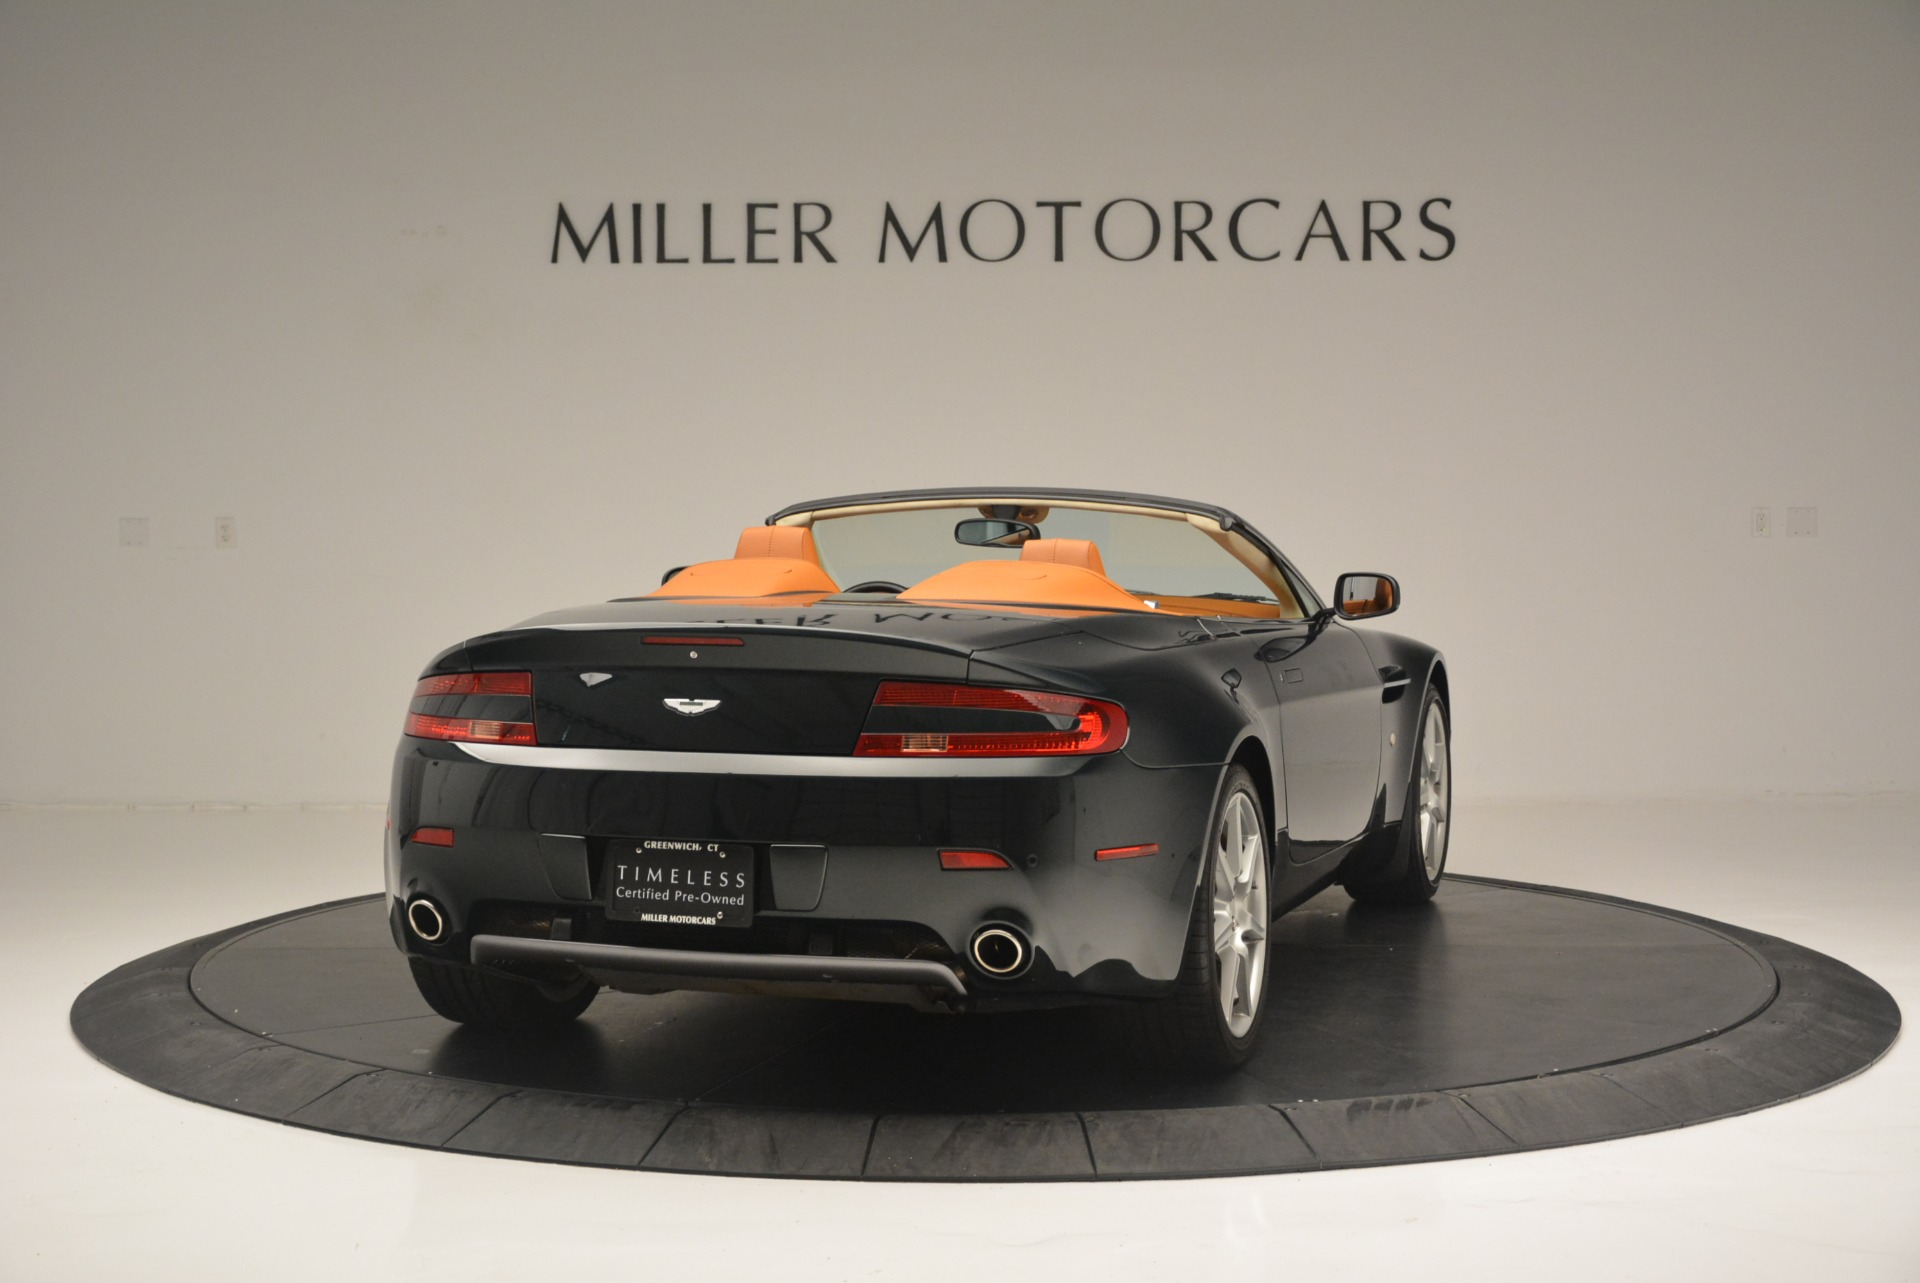 Used 2008 Aston Martin V8 Vantage Roadster For Sale In Greenwich, CT 2422_p7